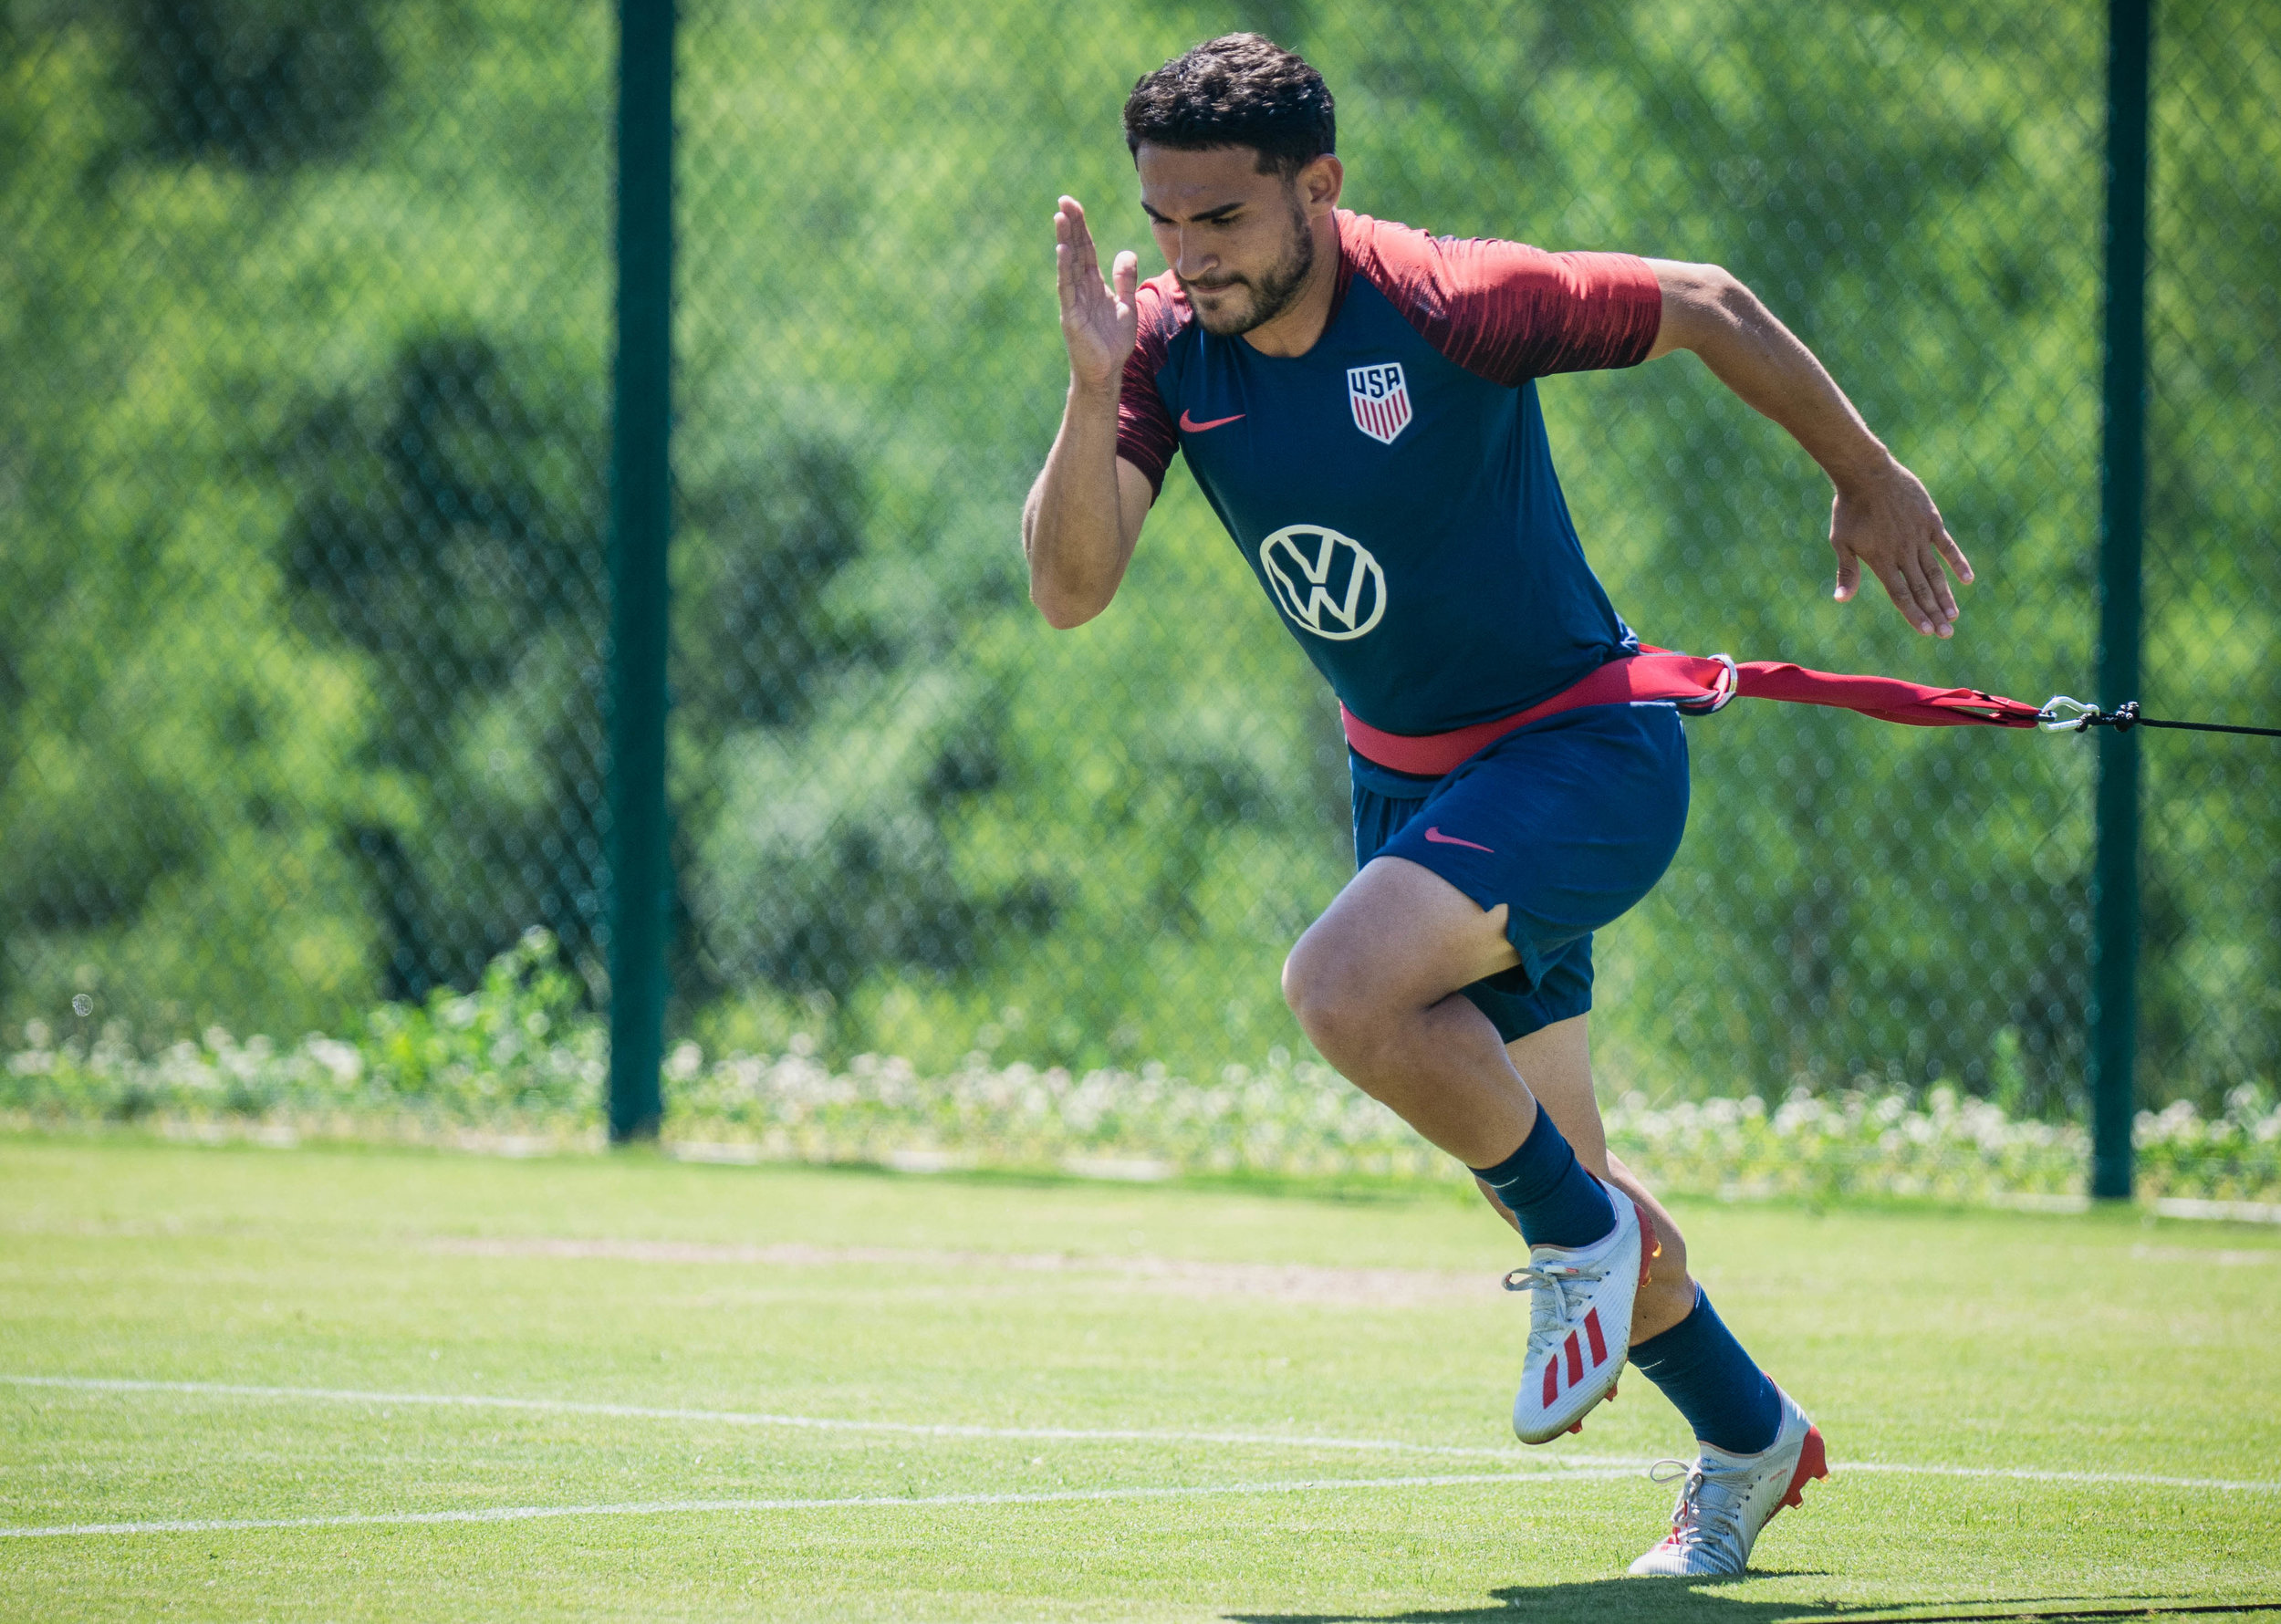 Christian Roldan runs during the U.S. Men's National Team, Gold Cup training session on Tuesday, June 25, 2019 at Pinnacle National Development Center in Kansas City, Kansas. The U.S. Men's National Team will face off with Panama in the team's final group stage match of the Gold Cup. | Photo by: Noah Riffe